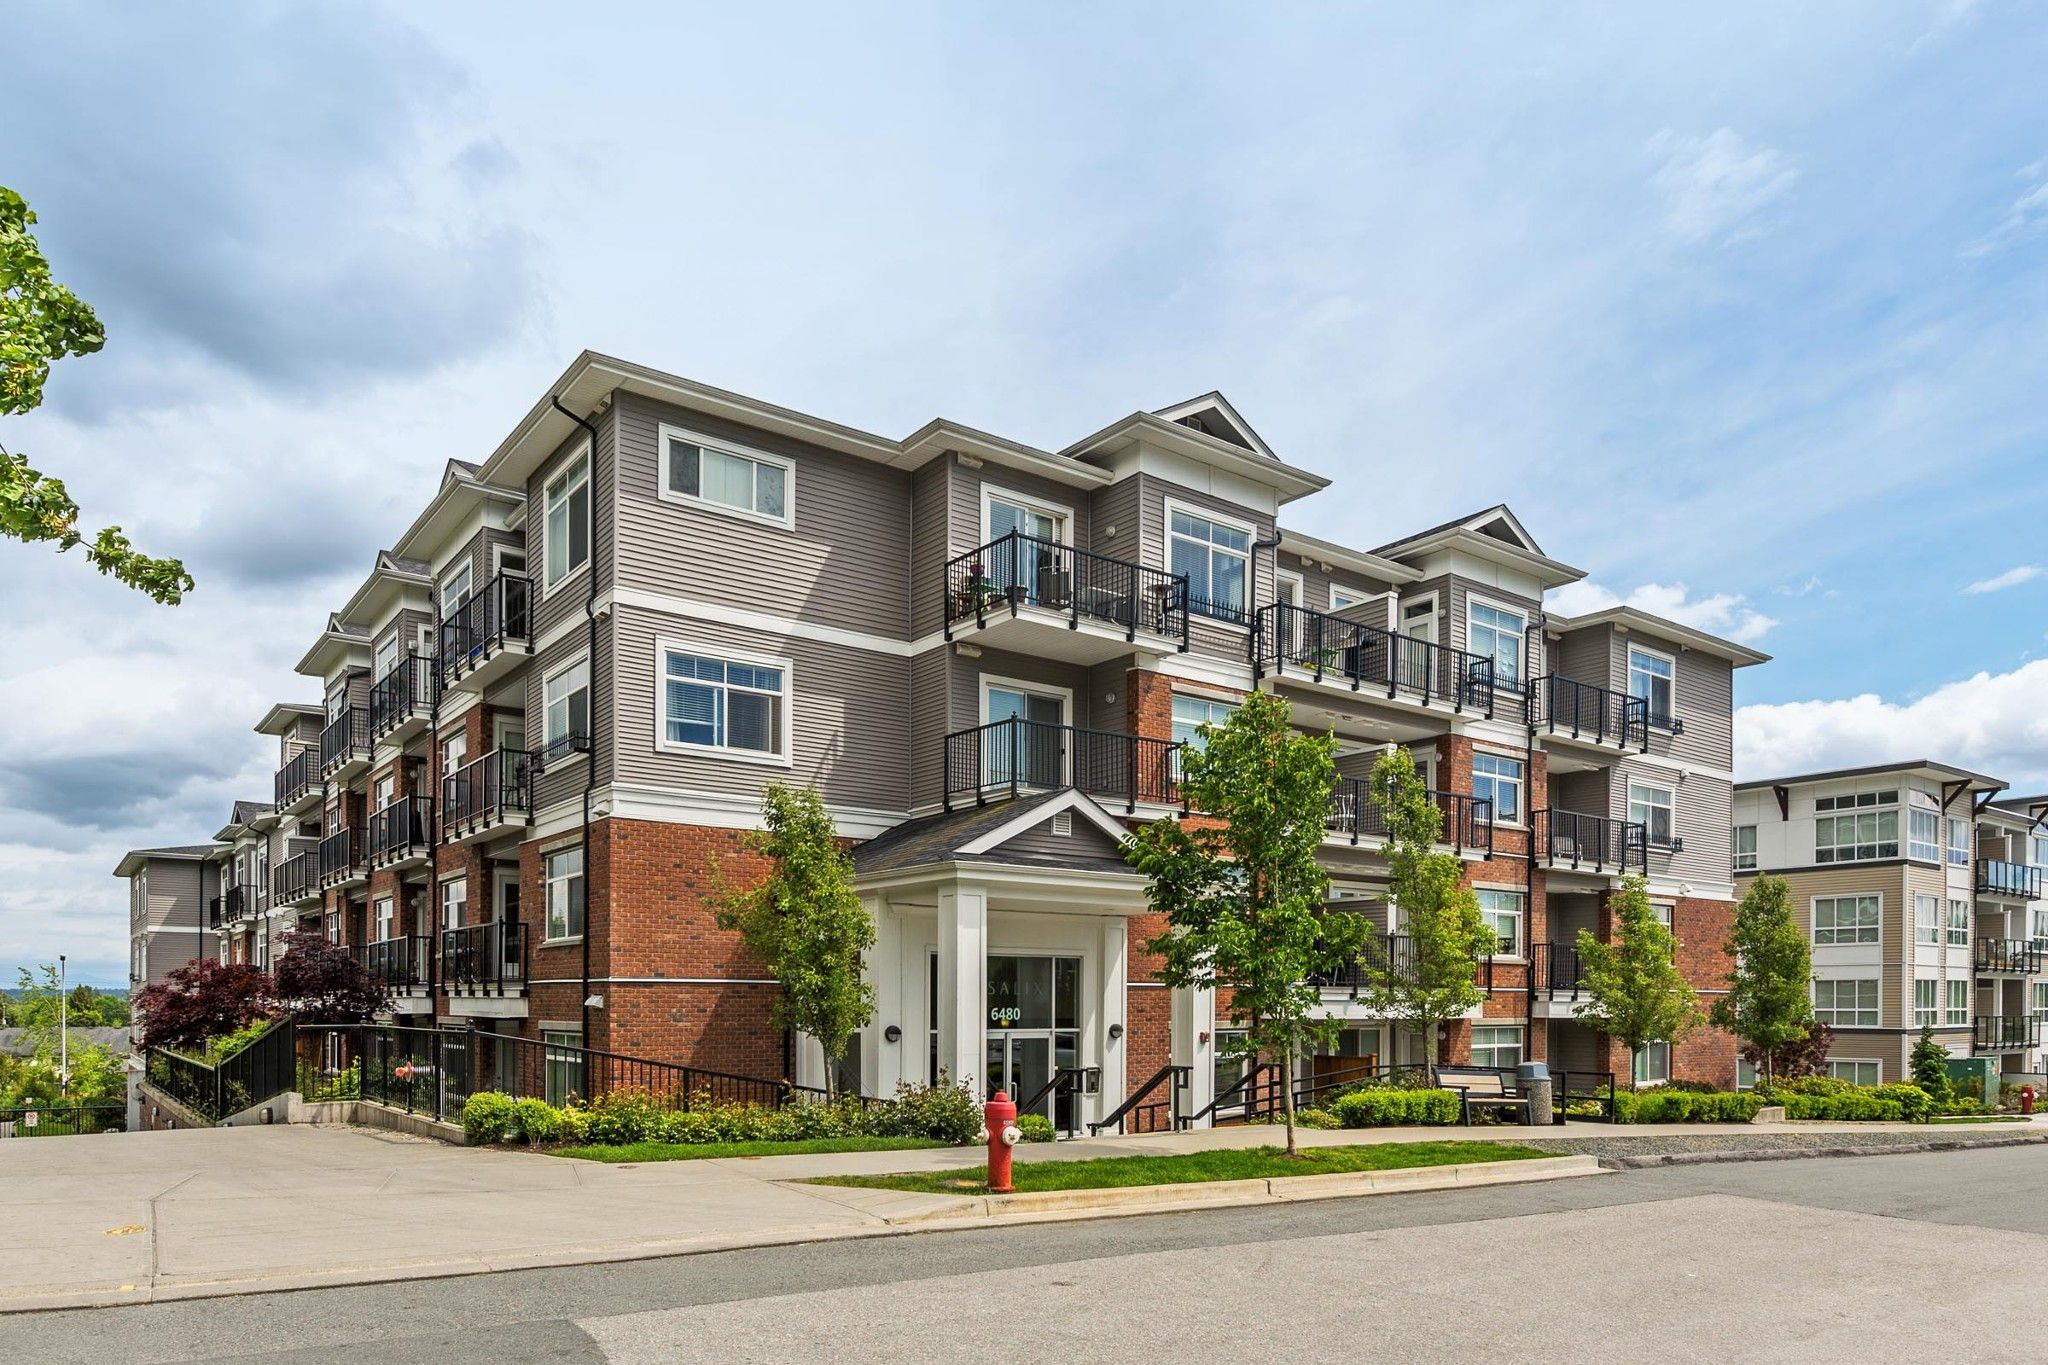 """Main Photo: 505 6480 195A Street in Surrey: Clayton Condo for sale in """"SALIX"""" (Cloverdale)  : MLS®# R2581896"""